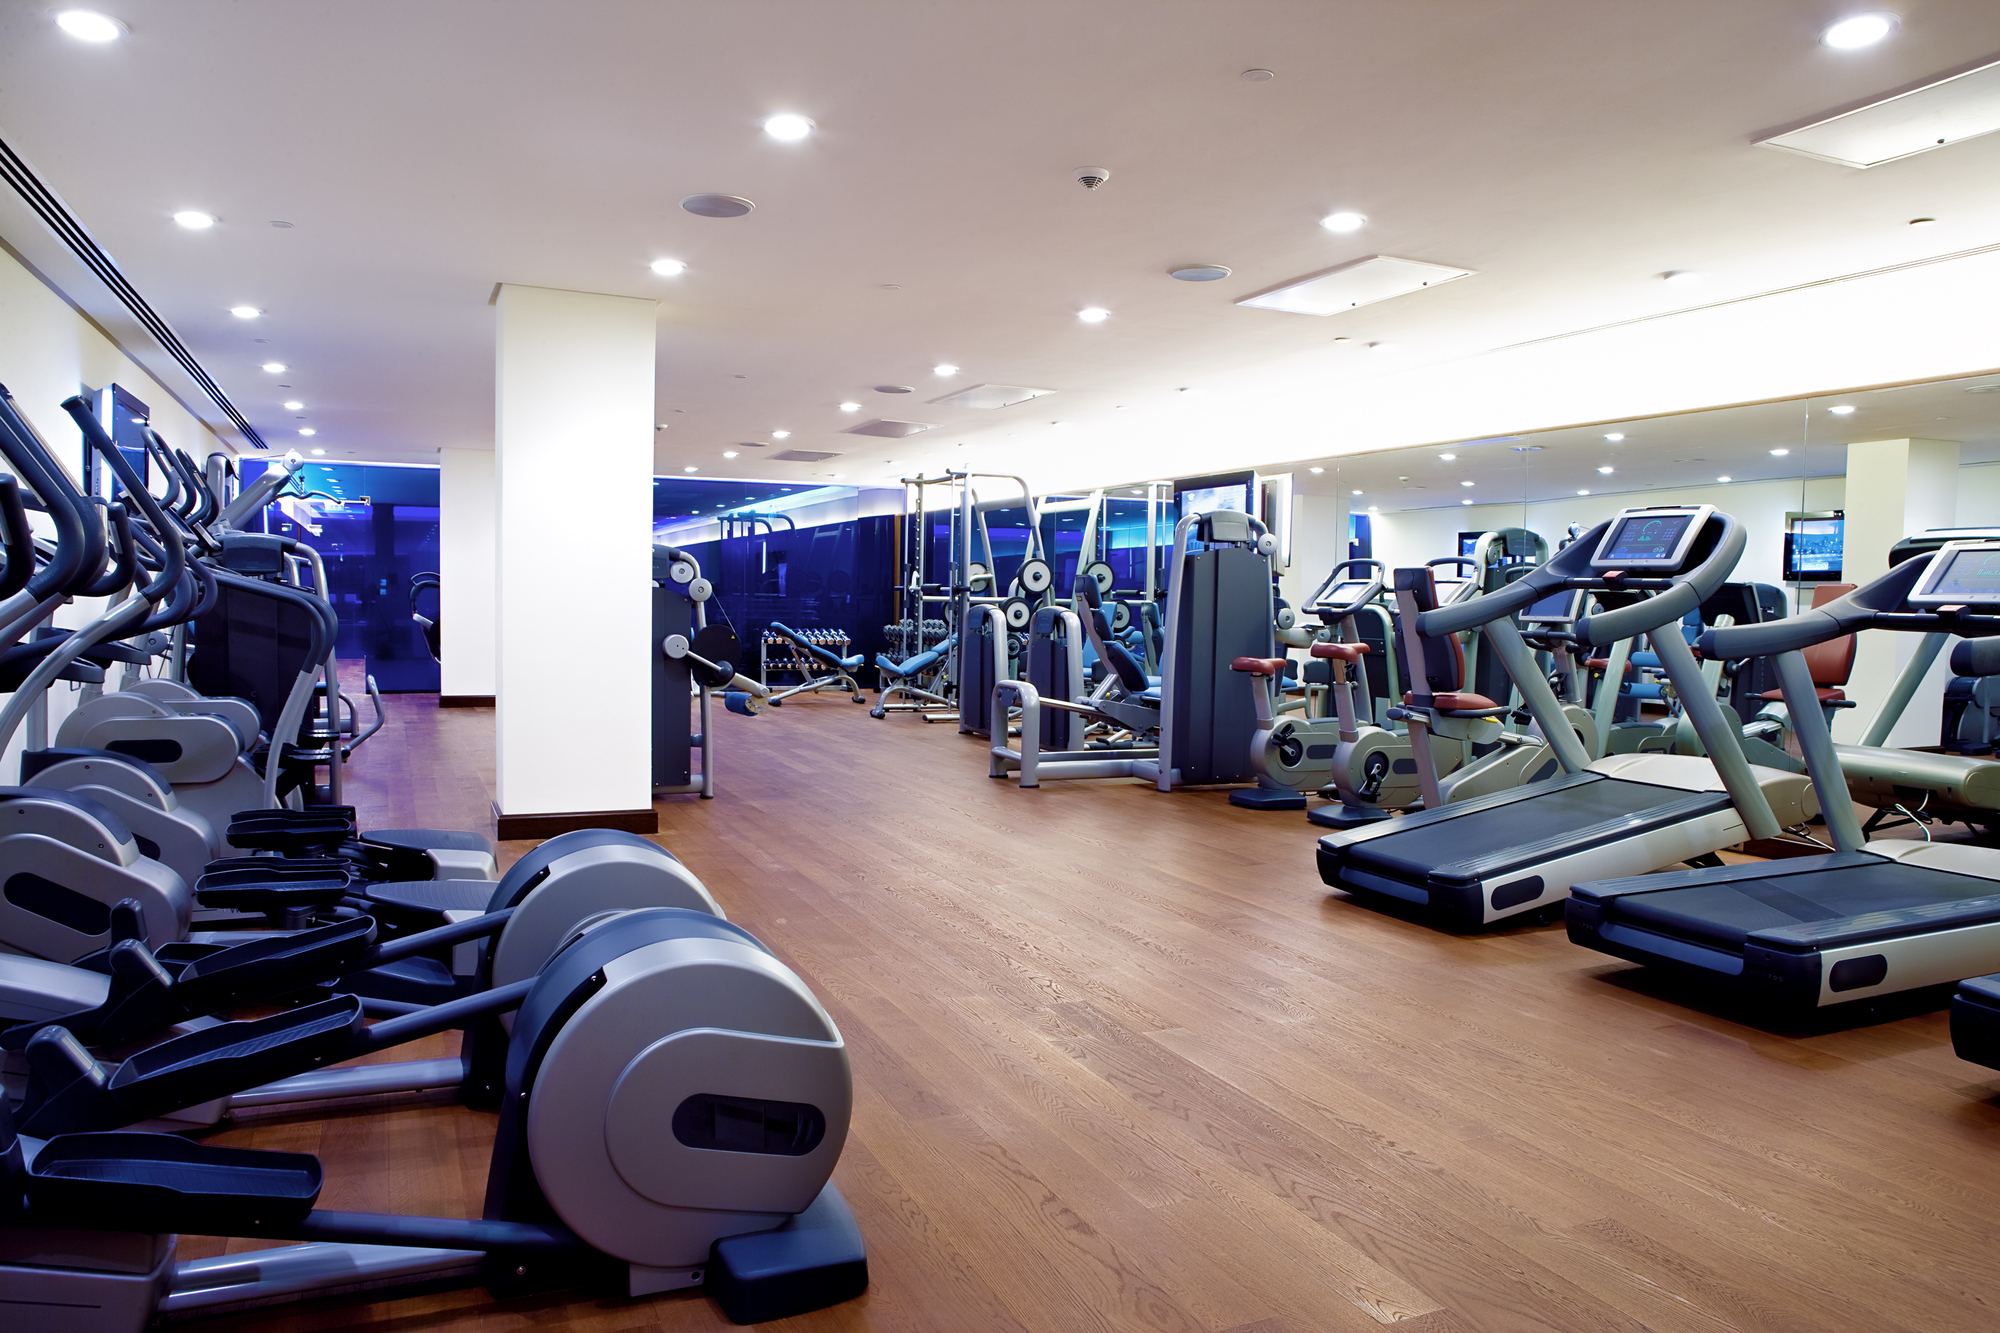 Empty Gym That Needs To Increase Apartment Fitness Center Use